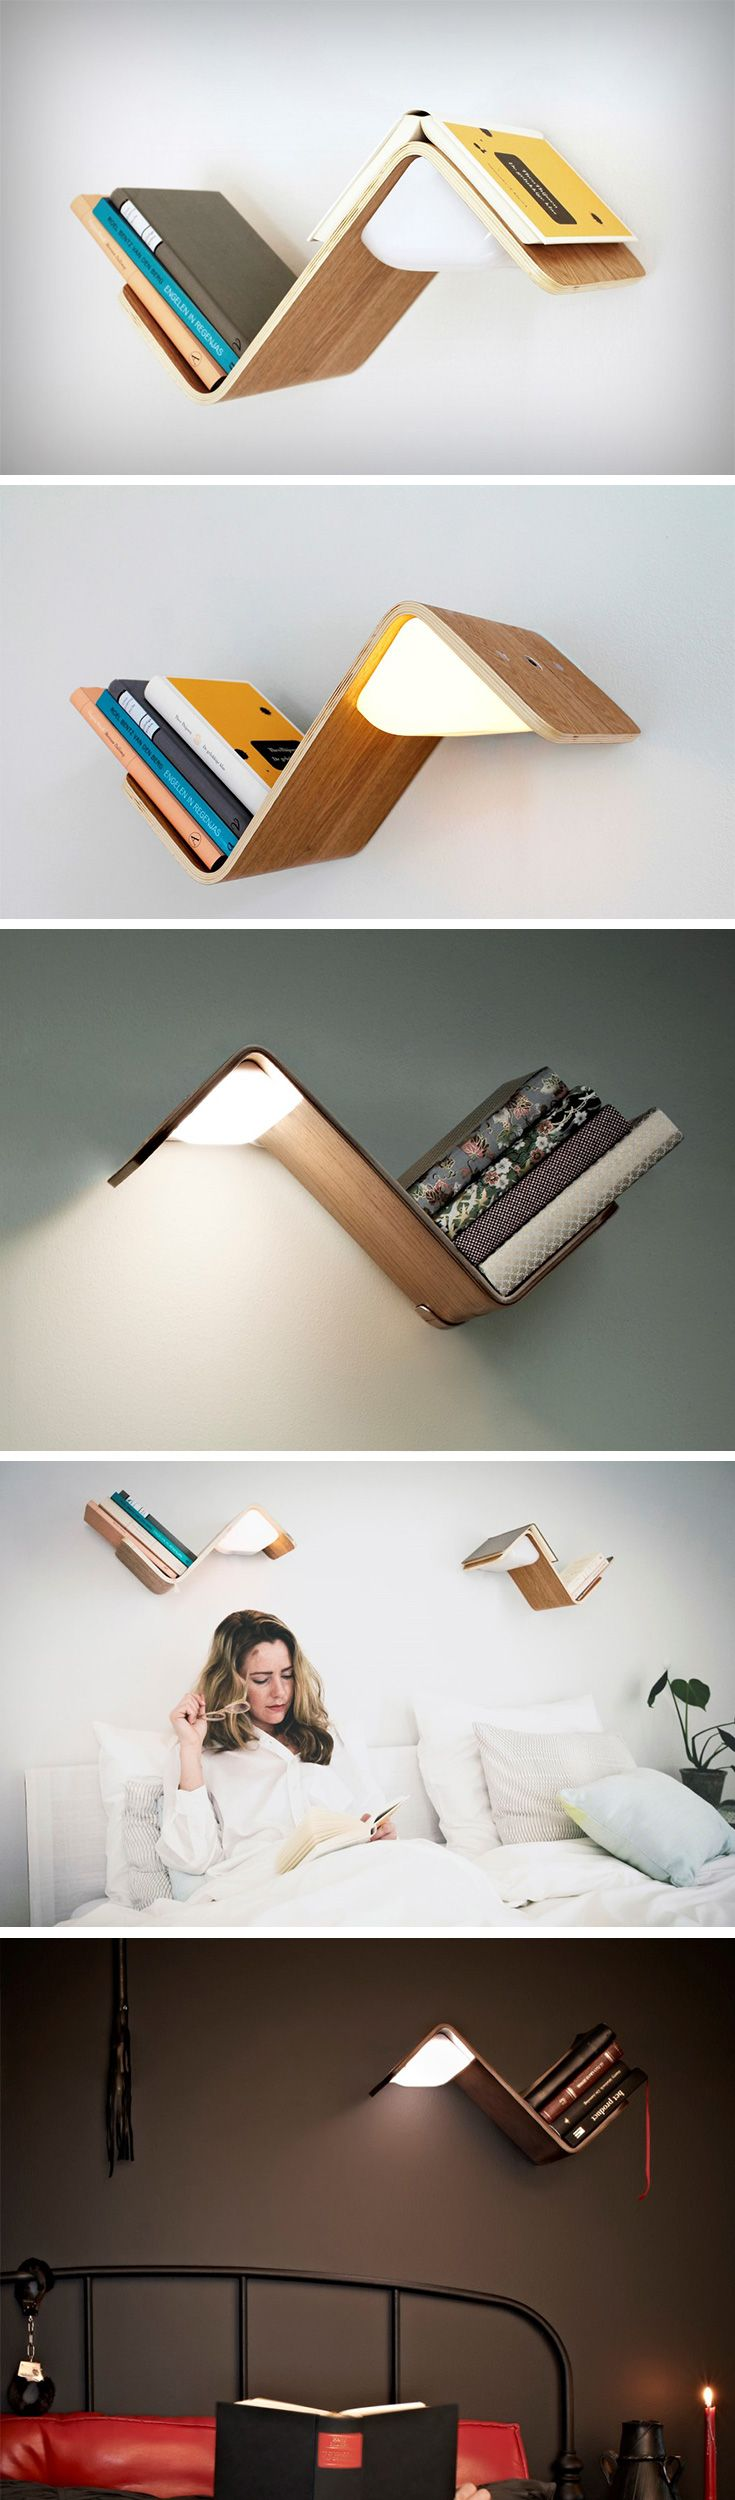 Built to act as a reading lamp, bookshelf, and a bookmark, all in one product, the Lililite is just beautiful good design. Also on the surface are proximity sensors that can tell when your book is on it and when it isn't, knowing that the minute you lift the book off the shelf to read it, so that it can switch on or off its light accordingly. BUY NOW!